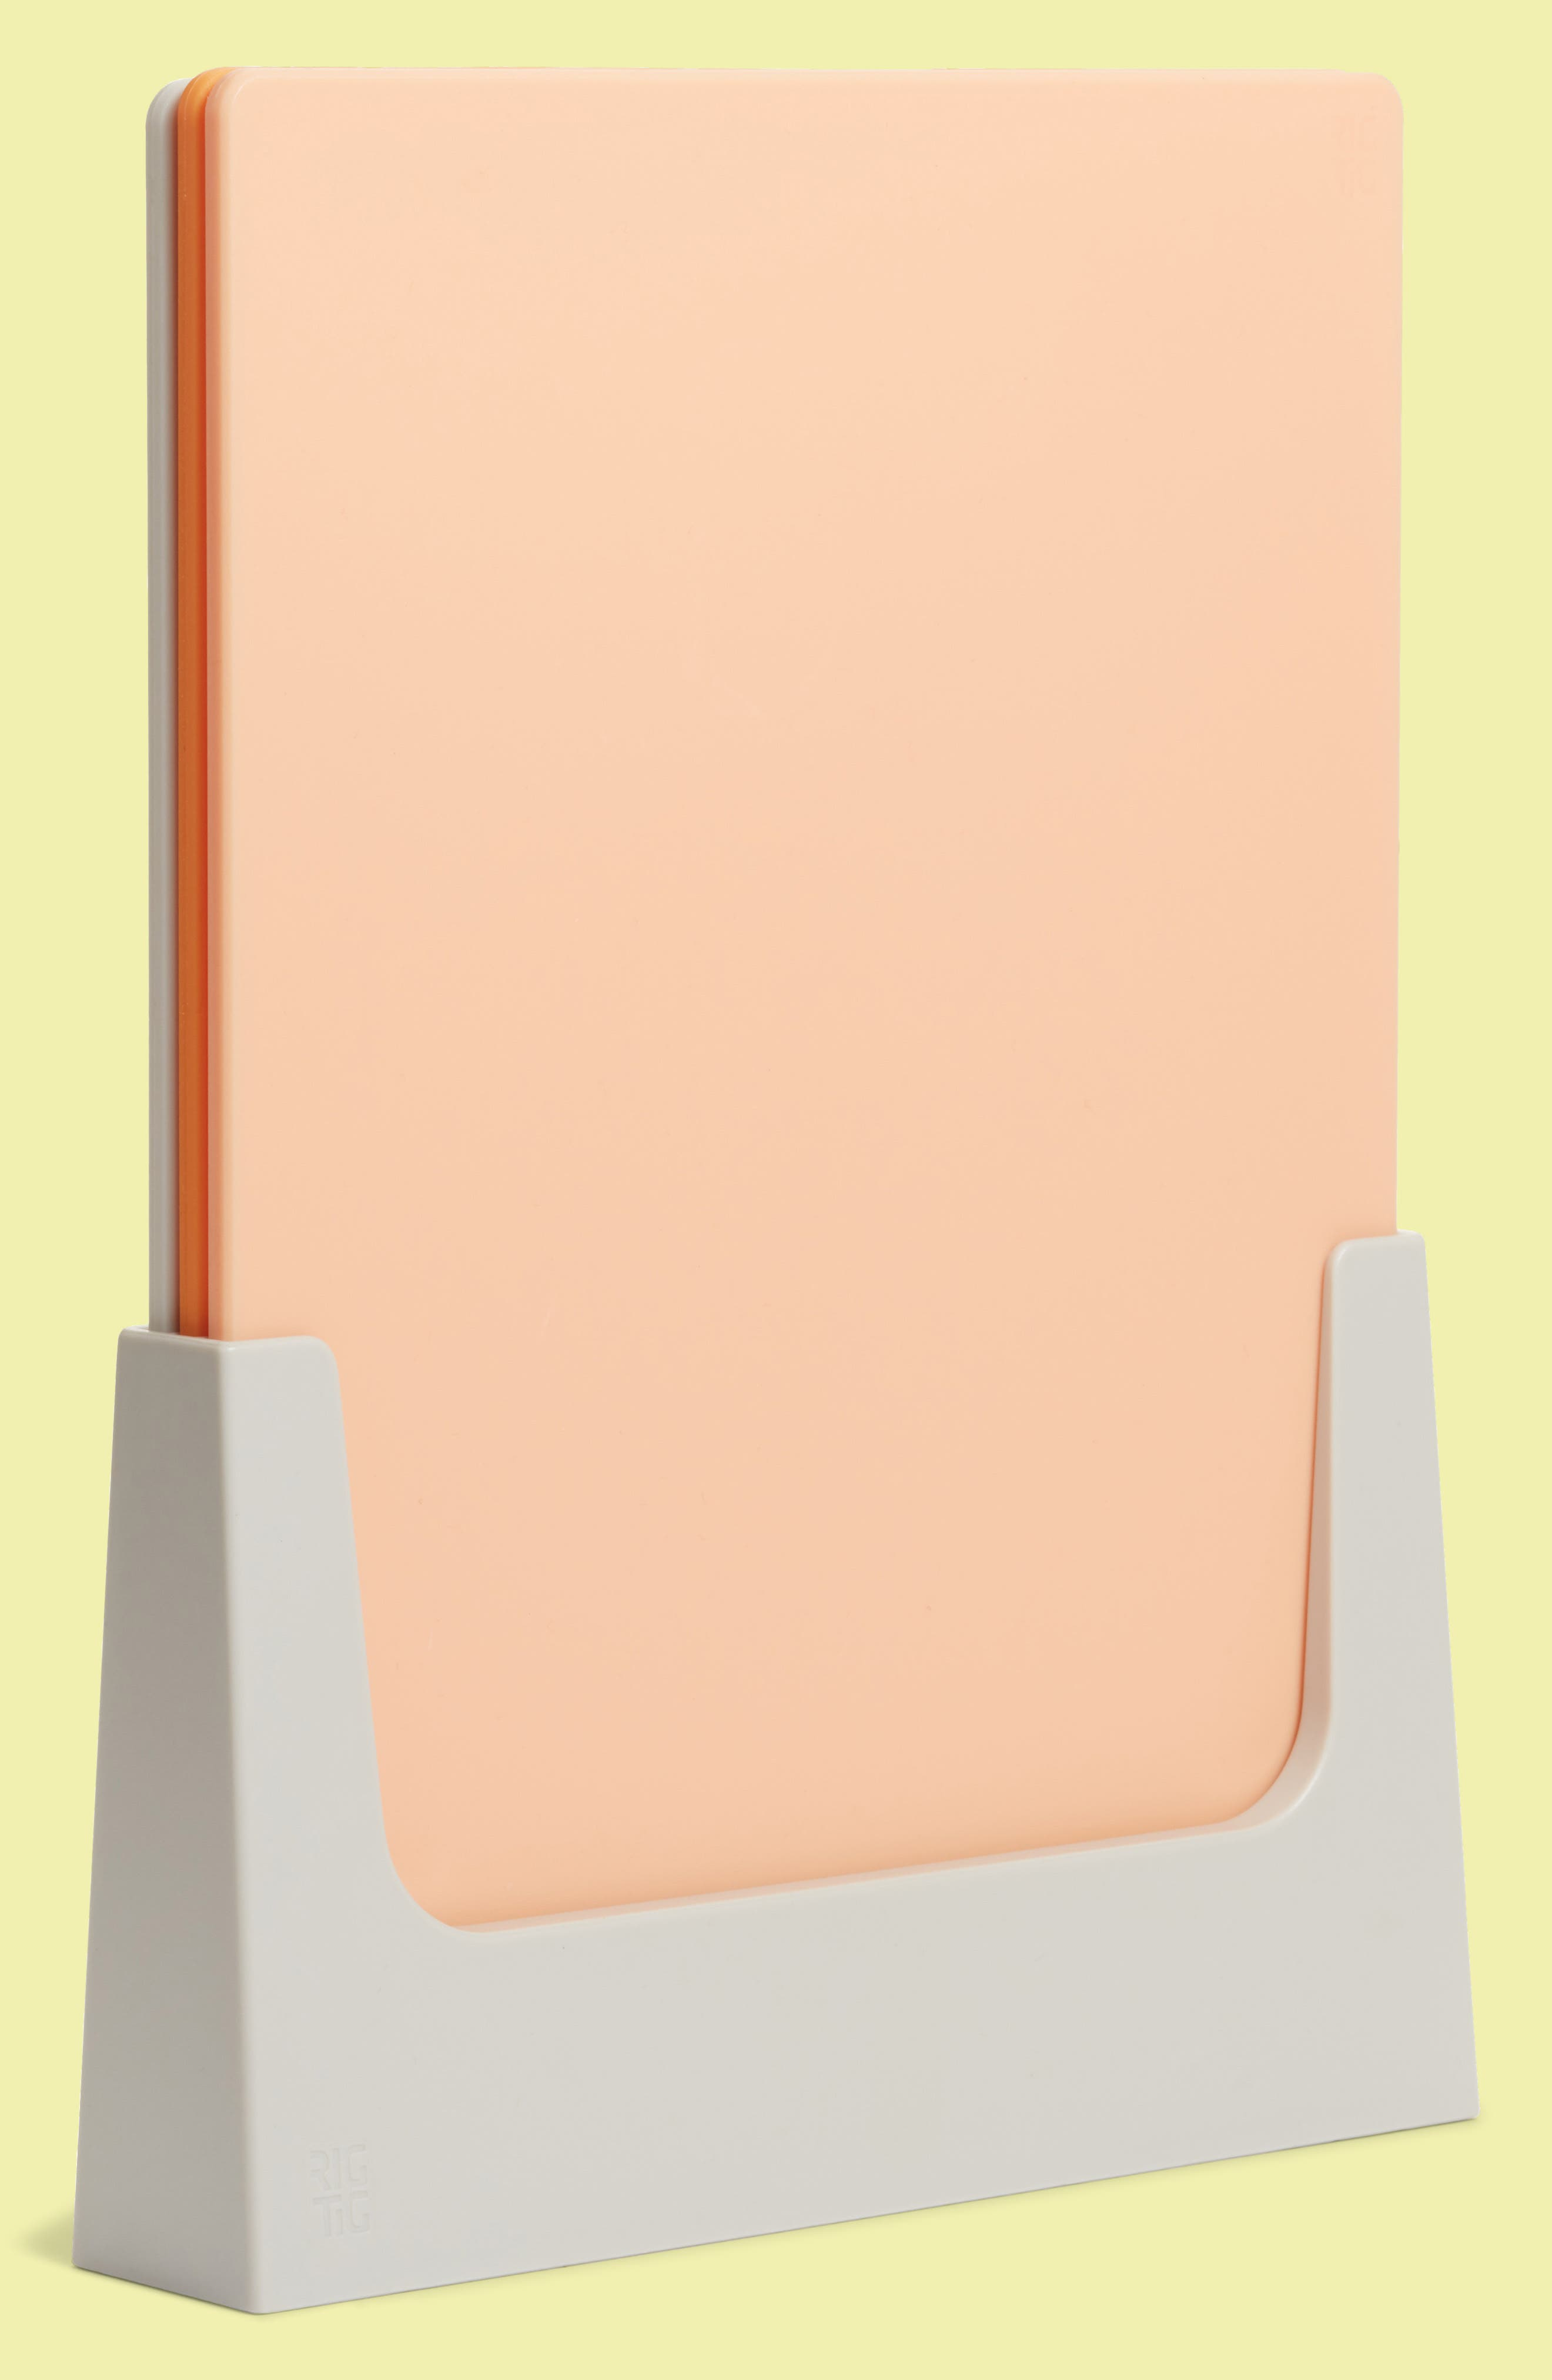 Rig-Tig Chop-It Set of 3 Cutting Boards,                         Main,                         color, Apricot